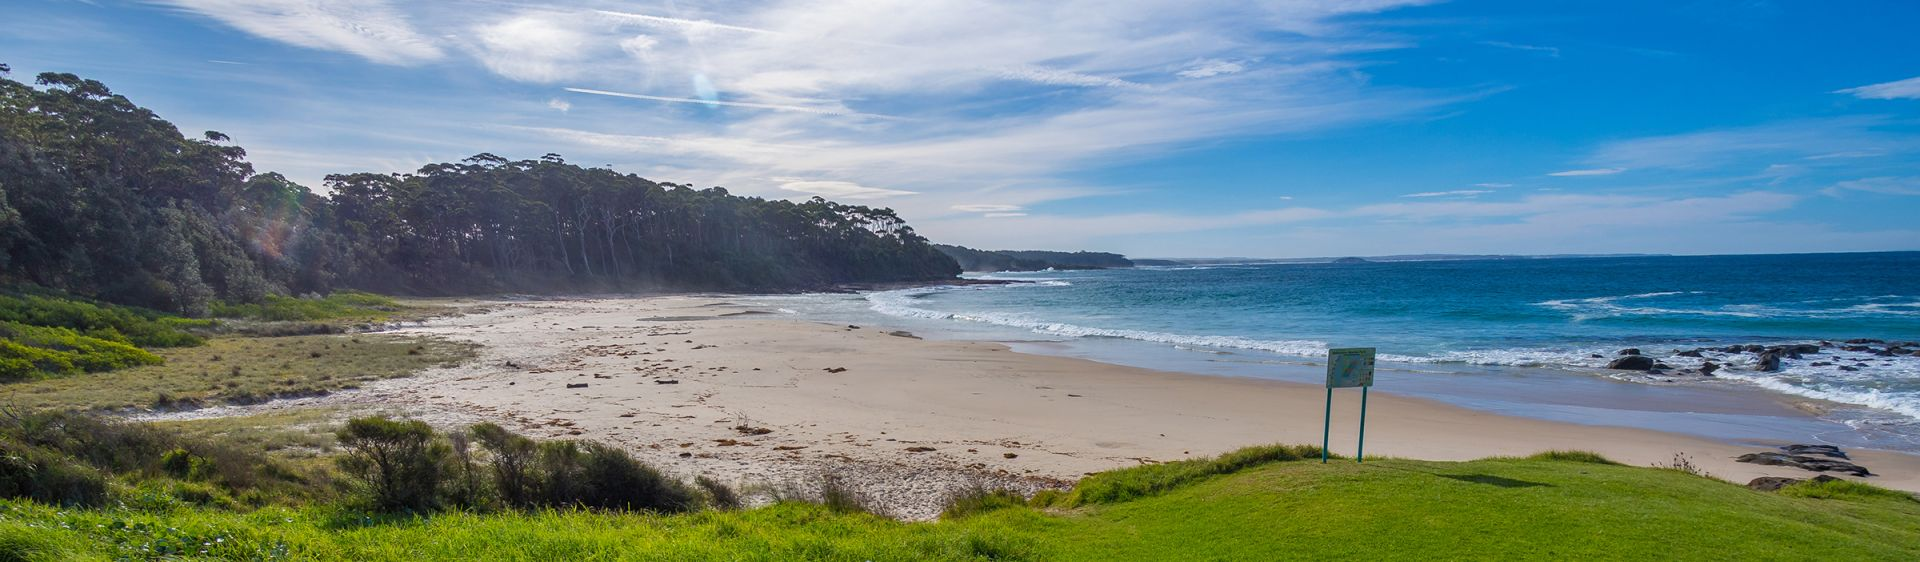 The beautiful Bawley Beach, home to two popular surf breaks in Shoalhaven